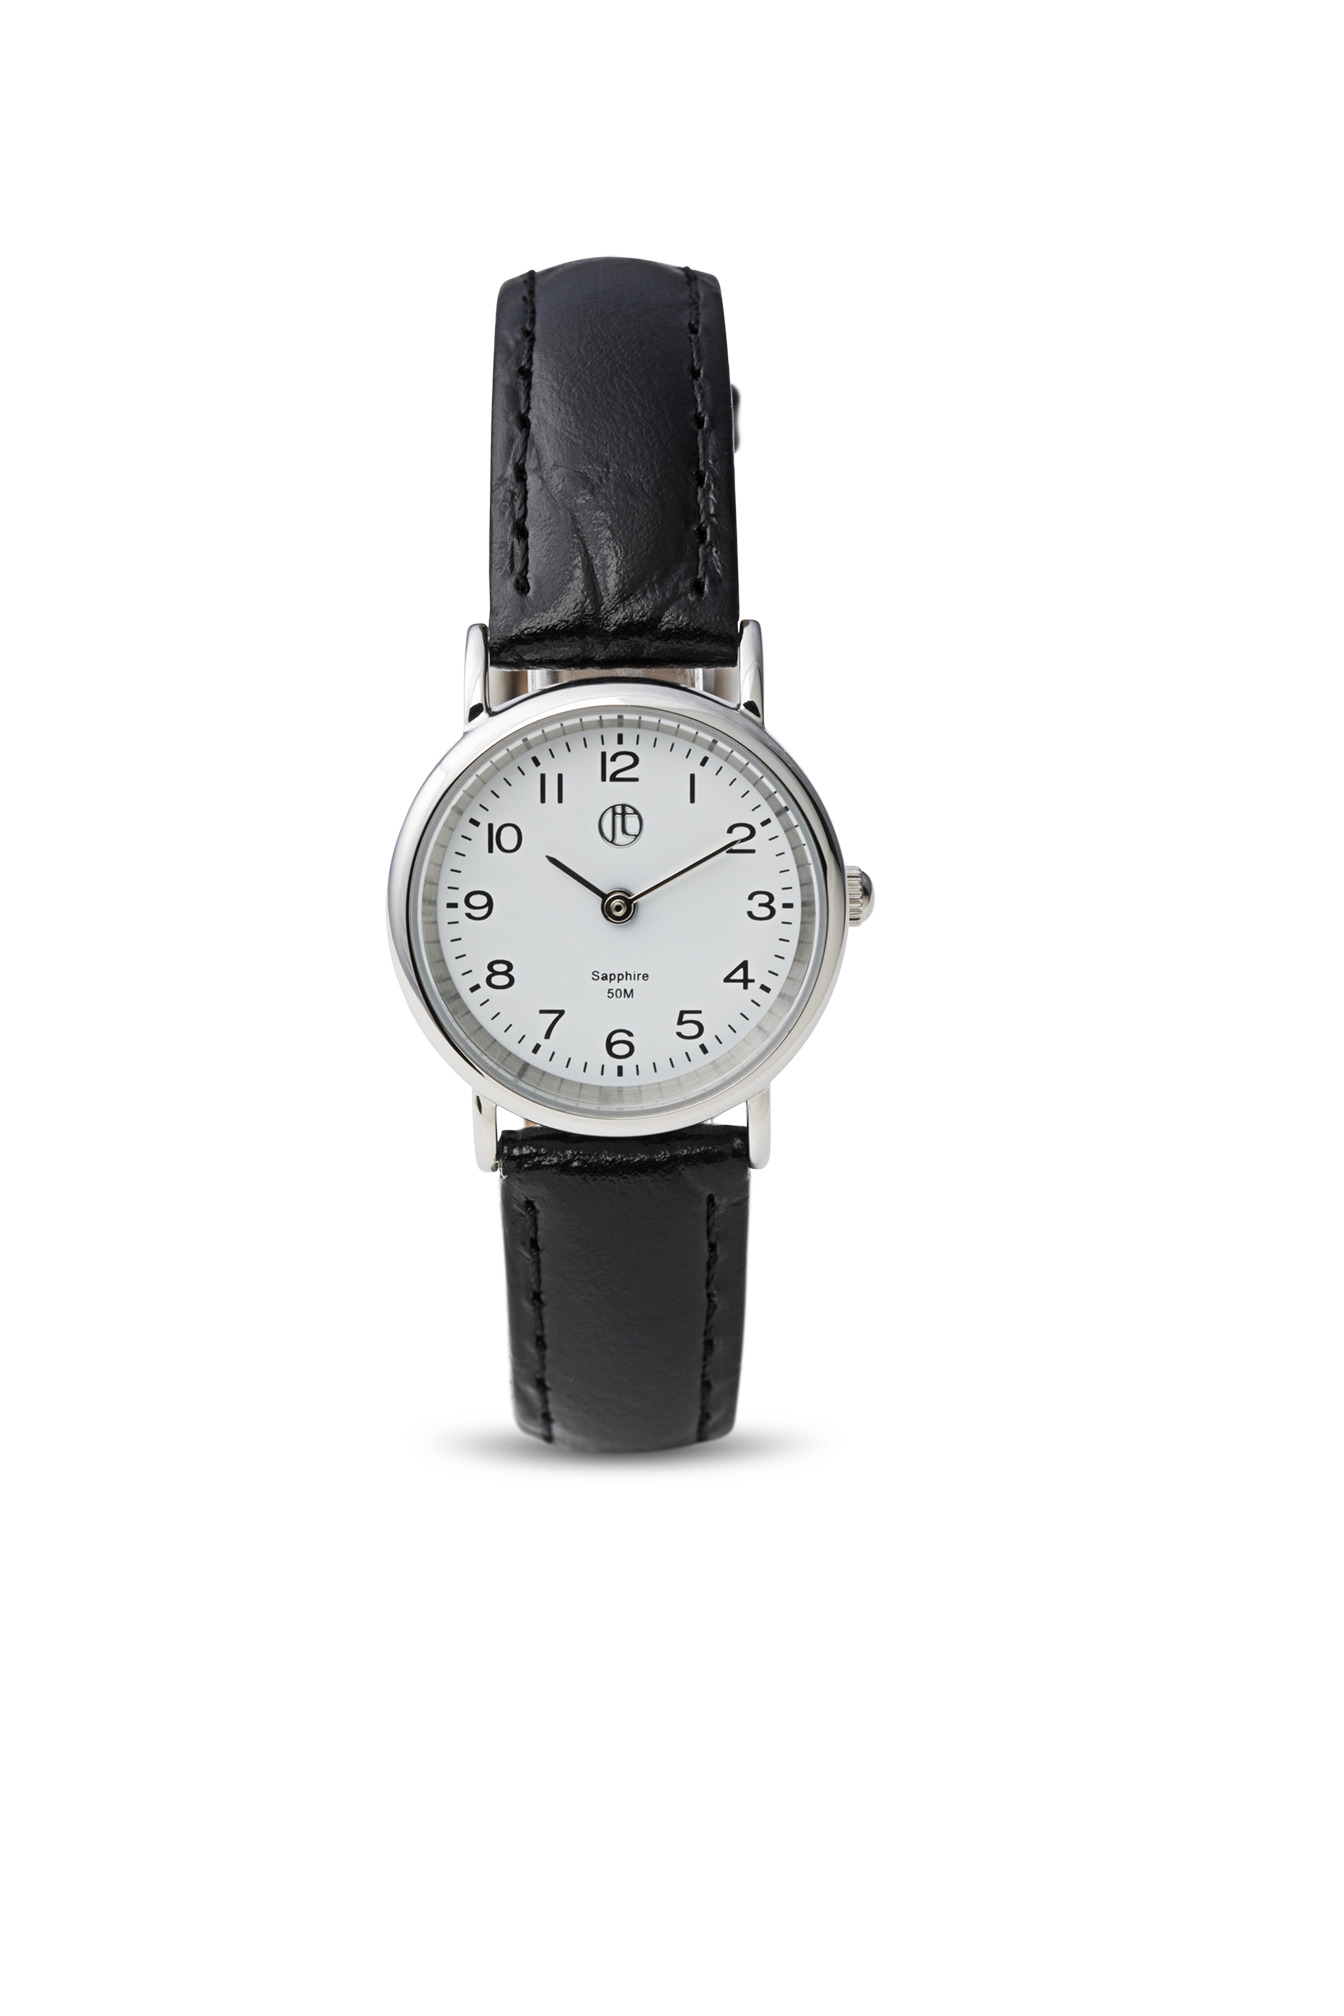 Image of Jeweltime ur - 2554-A